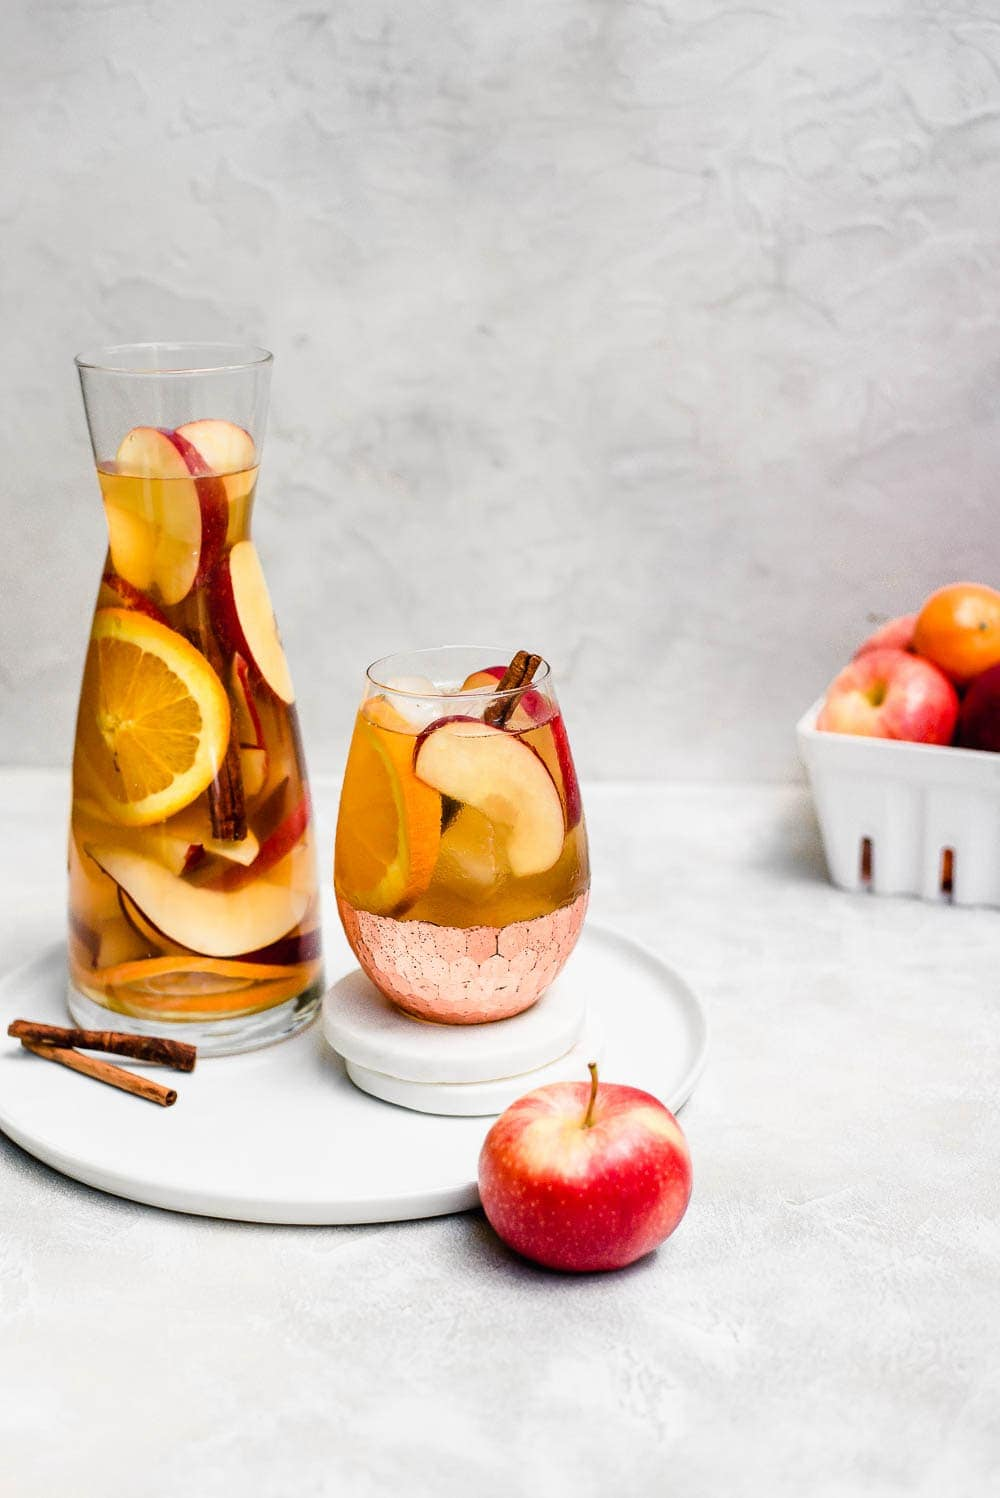 apple cider sangria on serving tray and coasters with apples